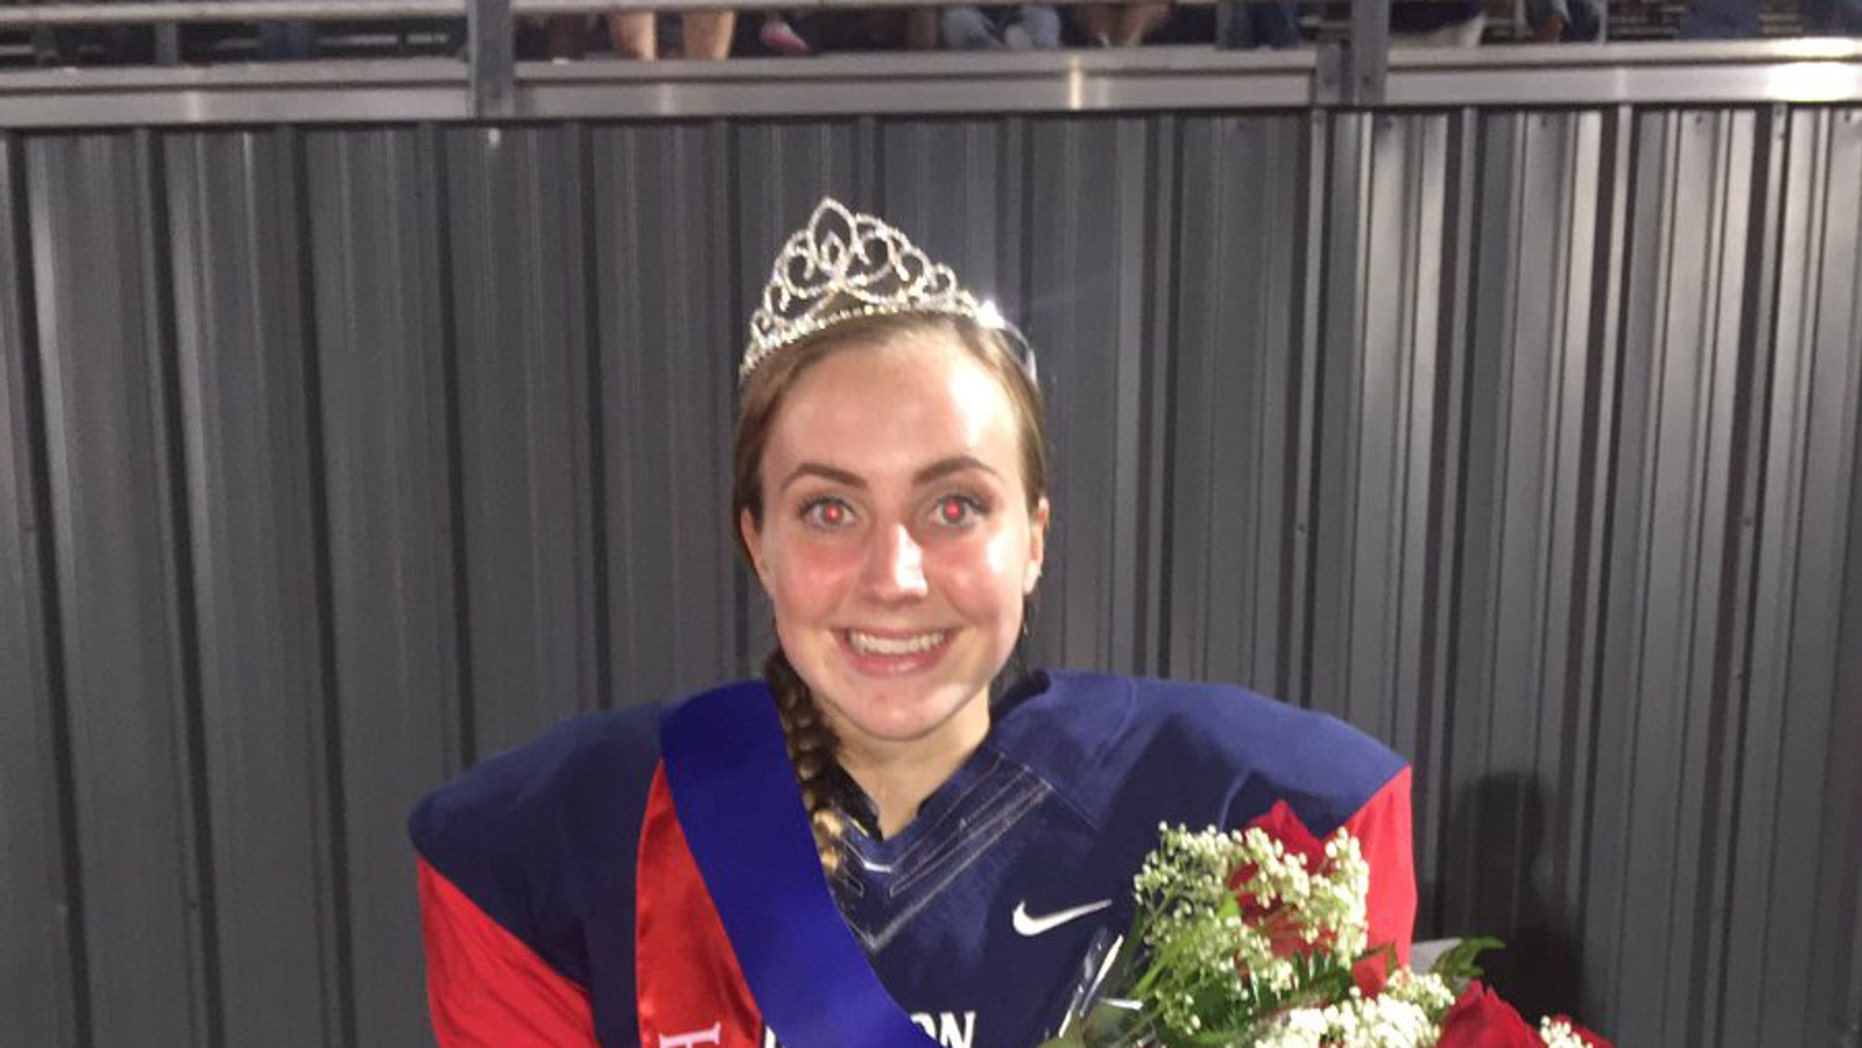 Claire Jeffress was named homecoming queen and kicked a game-winning field goal in October.